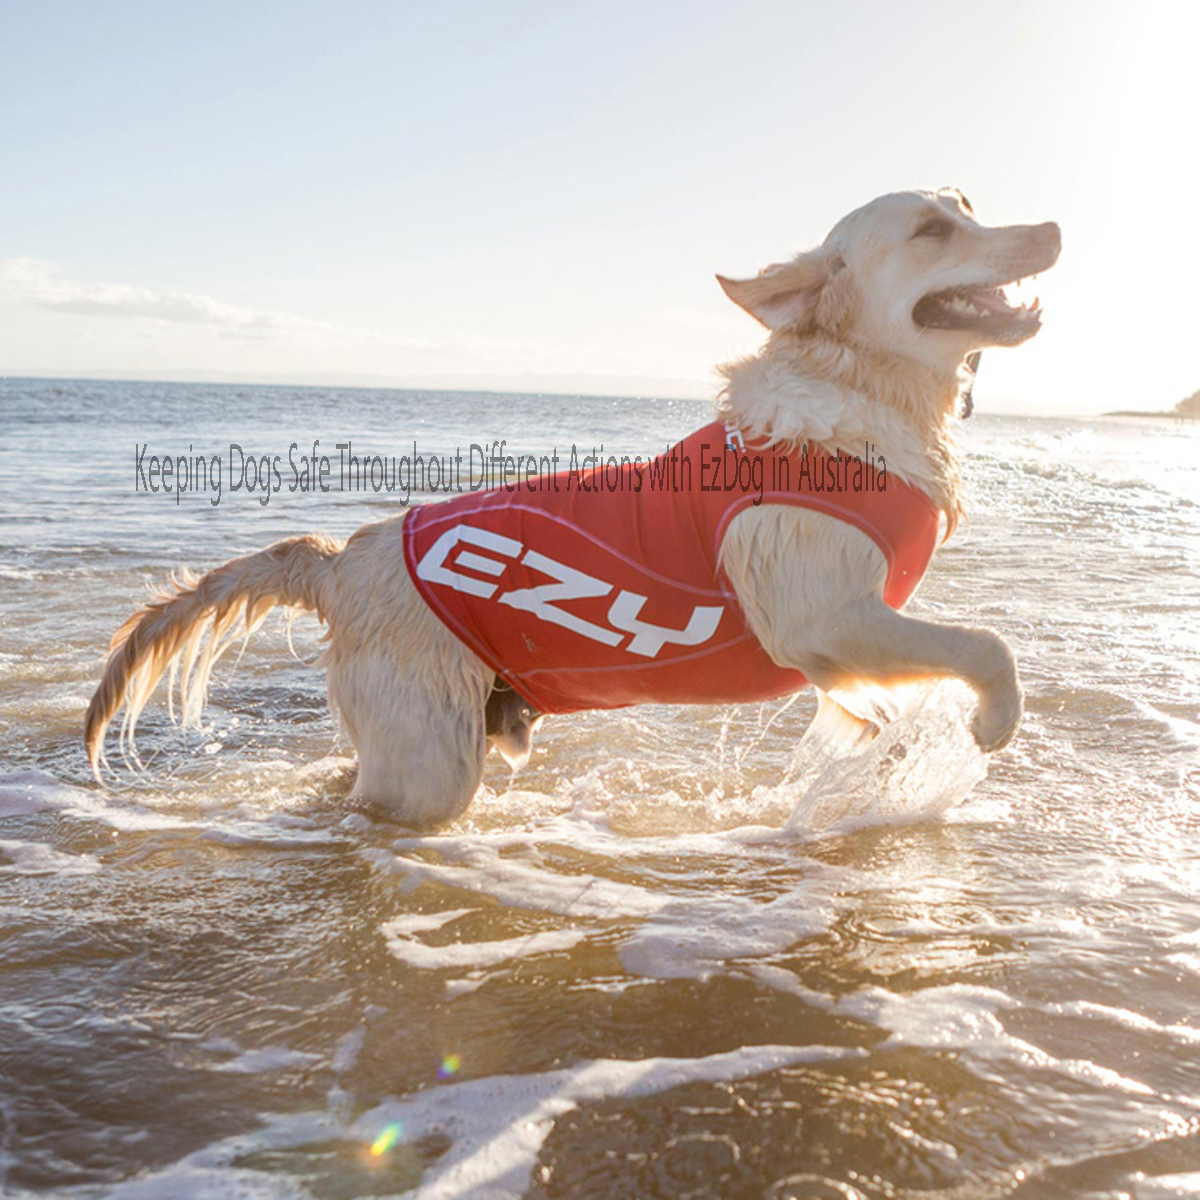 Keeping Dogs Safe Throughout Different Actions with EzDog in Australia